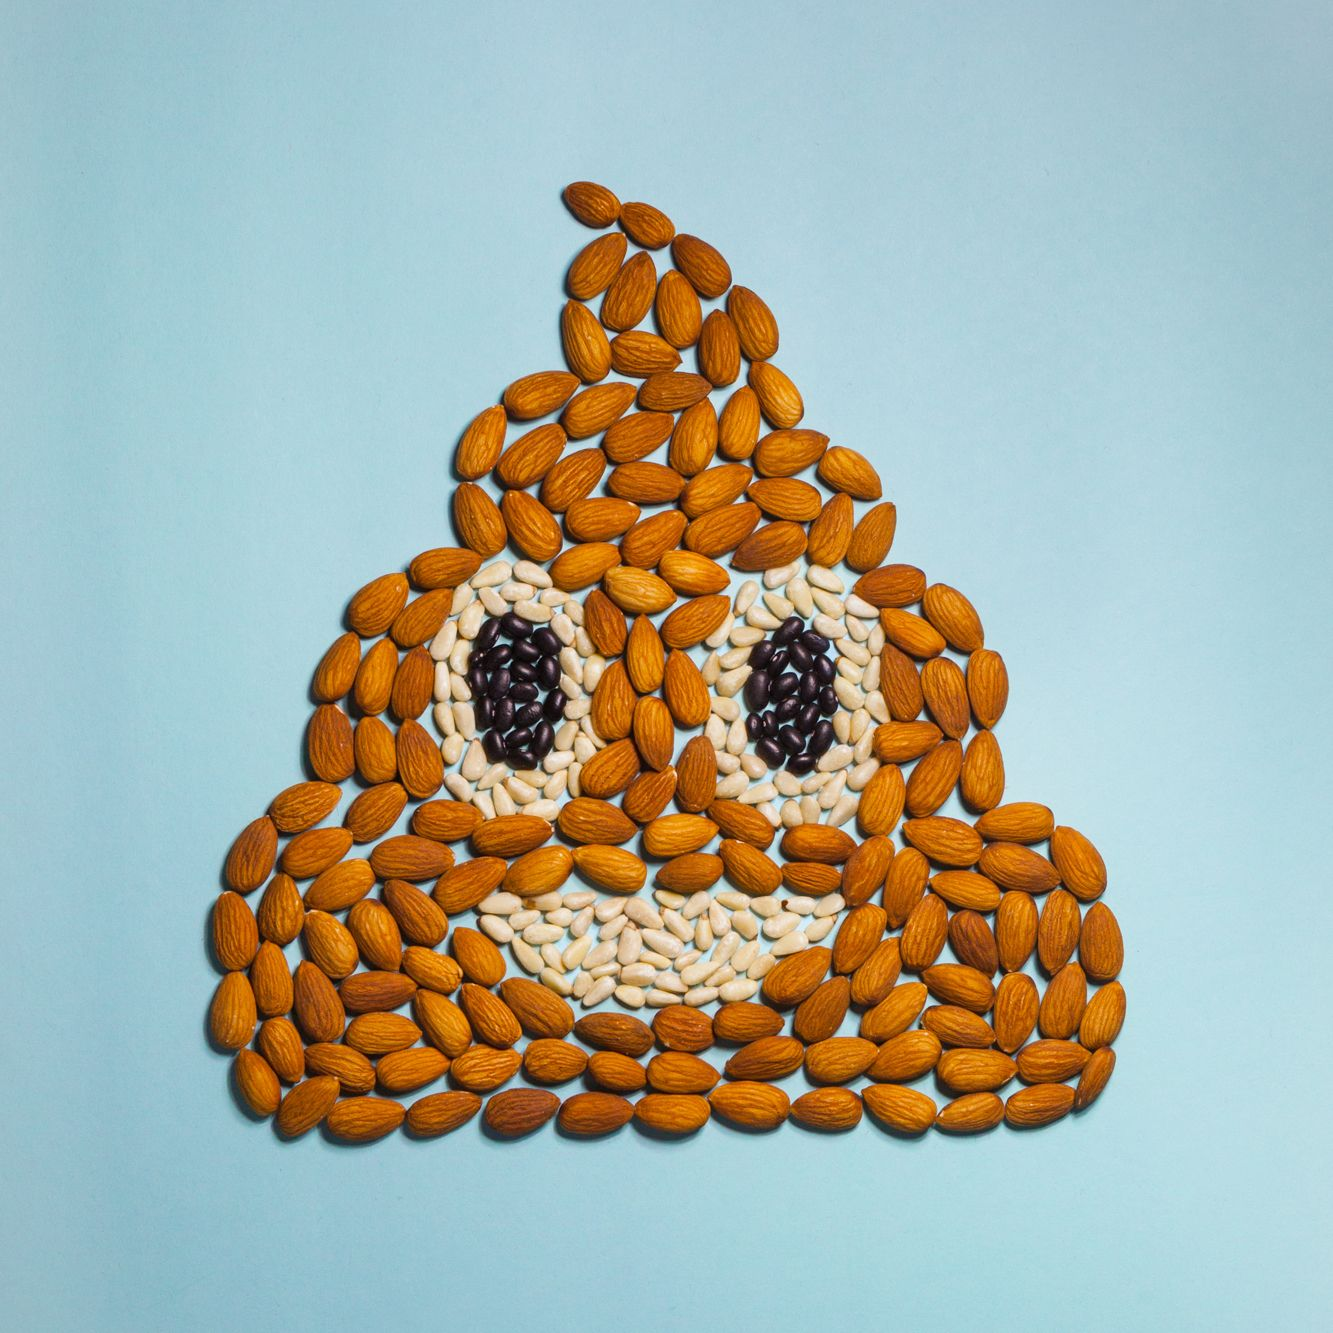 Nuts Beans The Magical Fruit The More You Eat The More You Made Entirely Of Almonds Pine Nuts And Black Beans And Lots Of Fi Emoji Food App Emoji Party